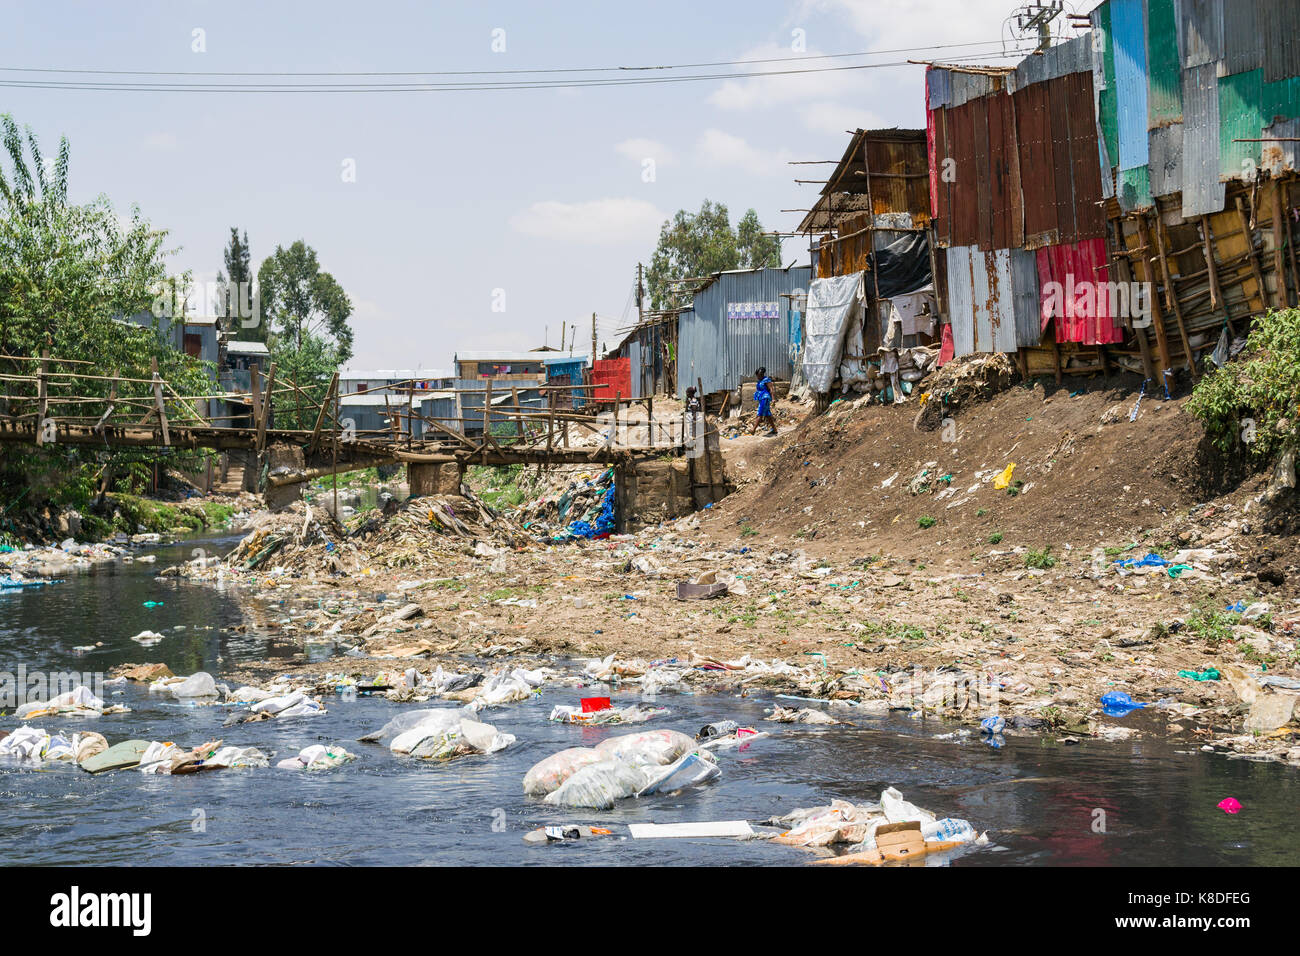 Slum shacks line the Ngong river which is polluted with rubbish, plastic waste and garbage, a makeshift wooden bridge - Stock Image